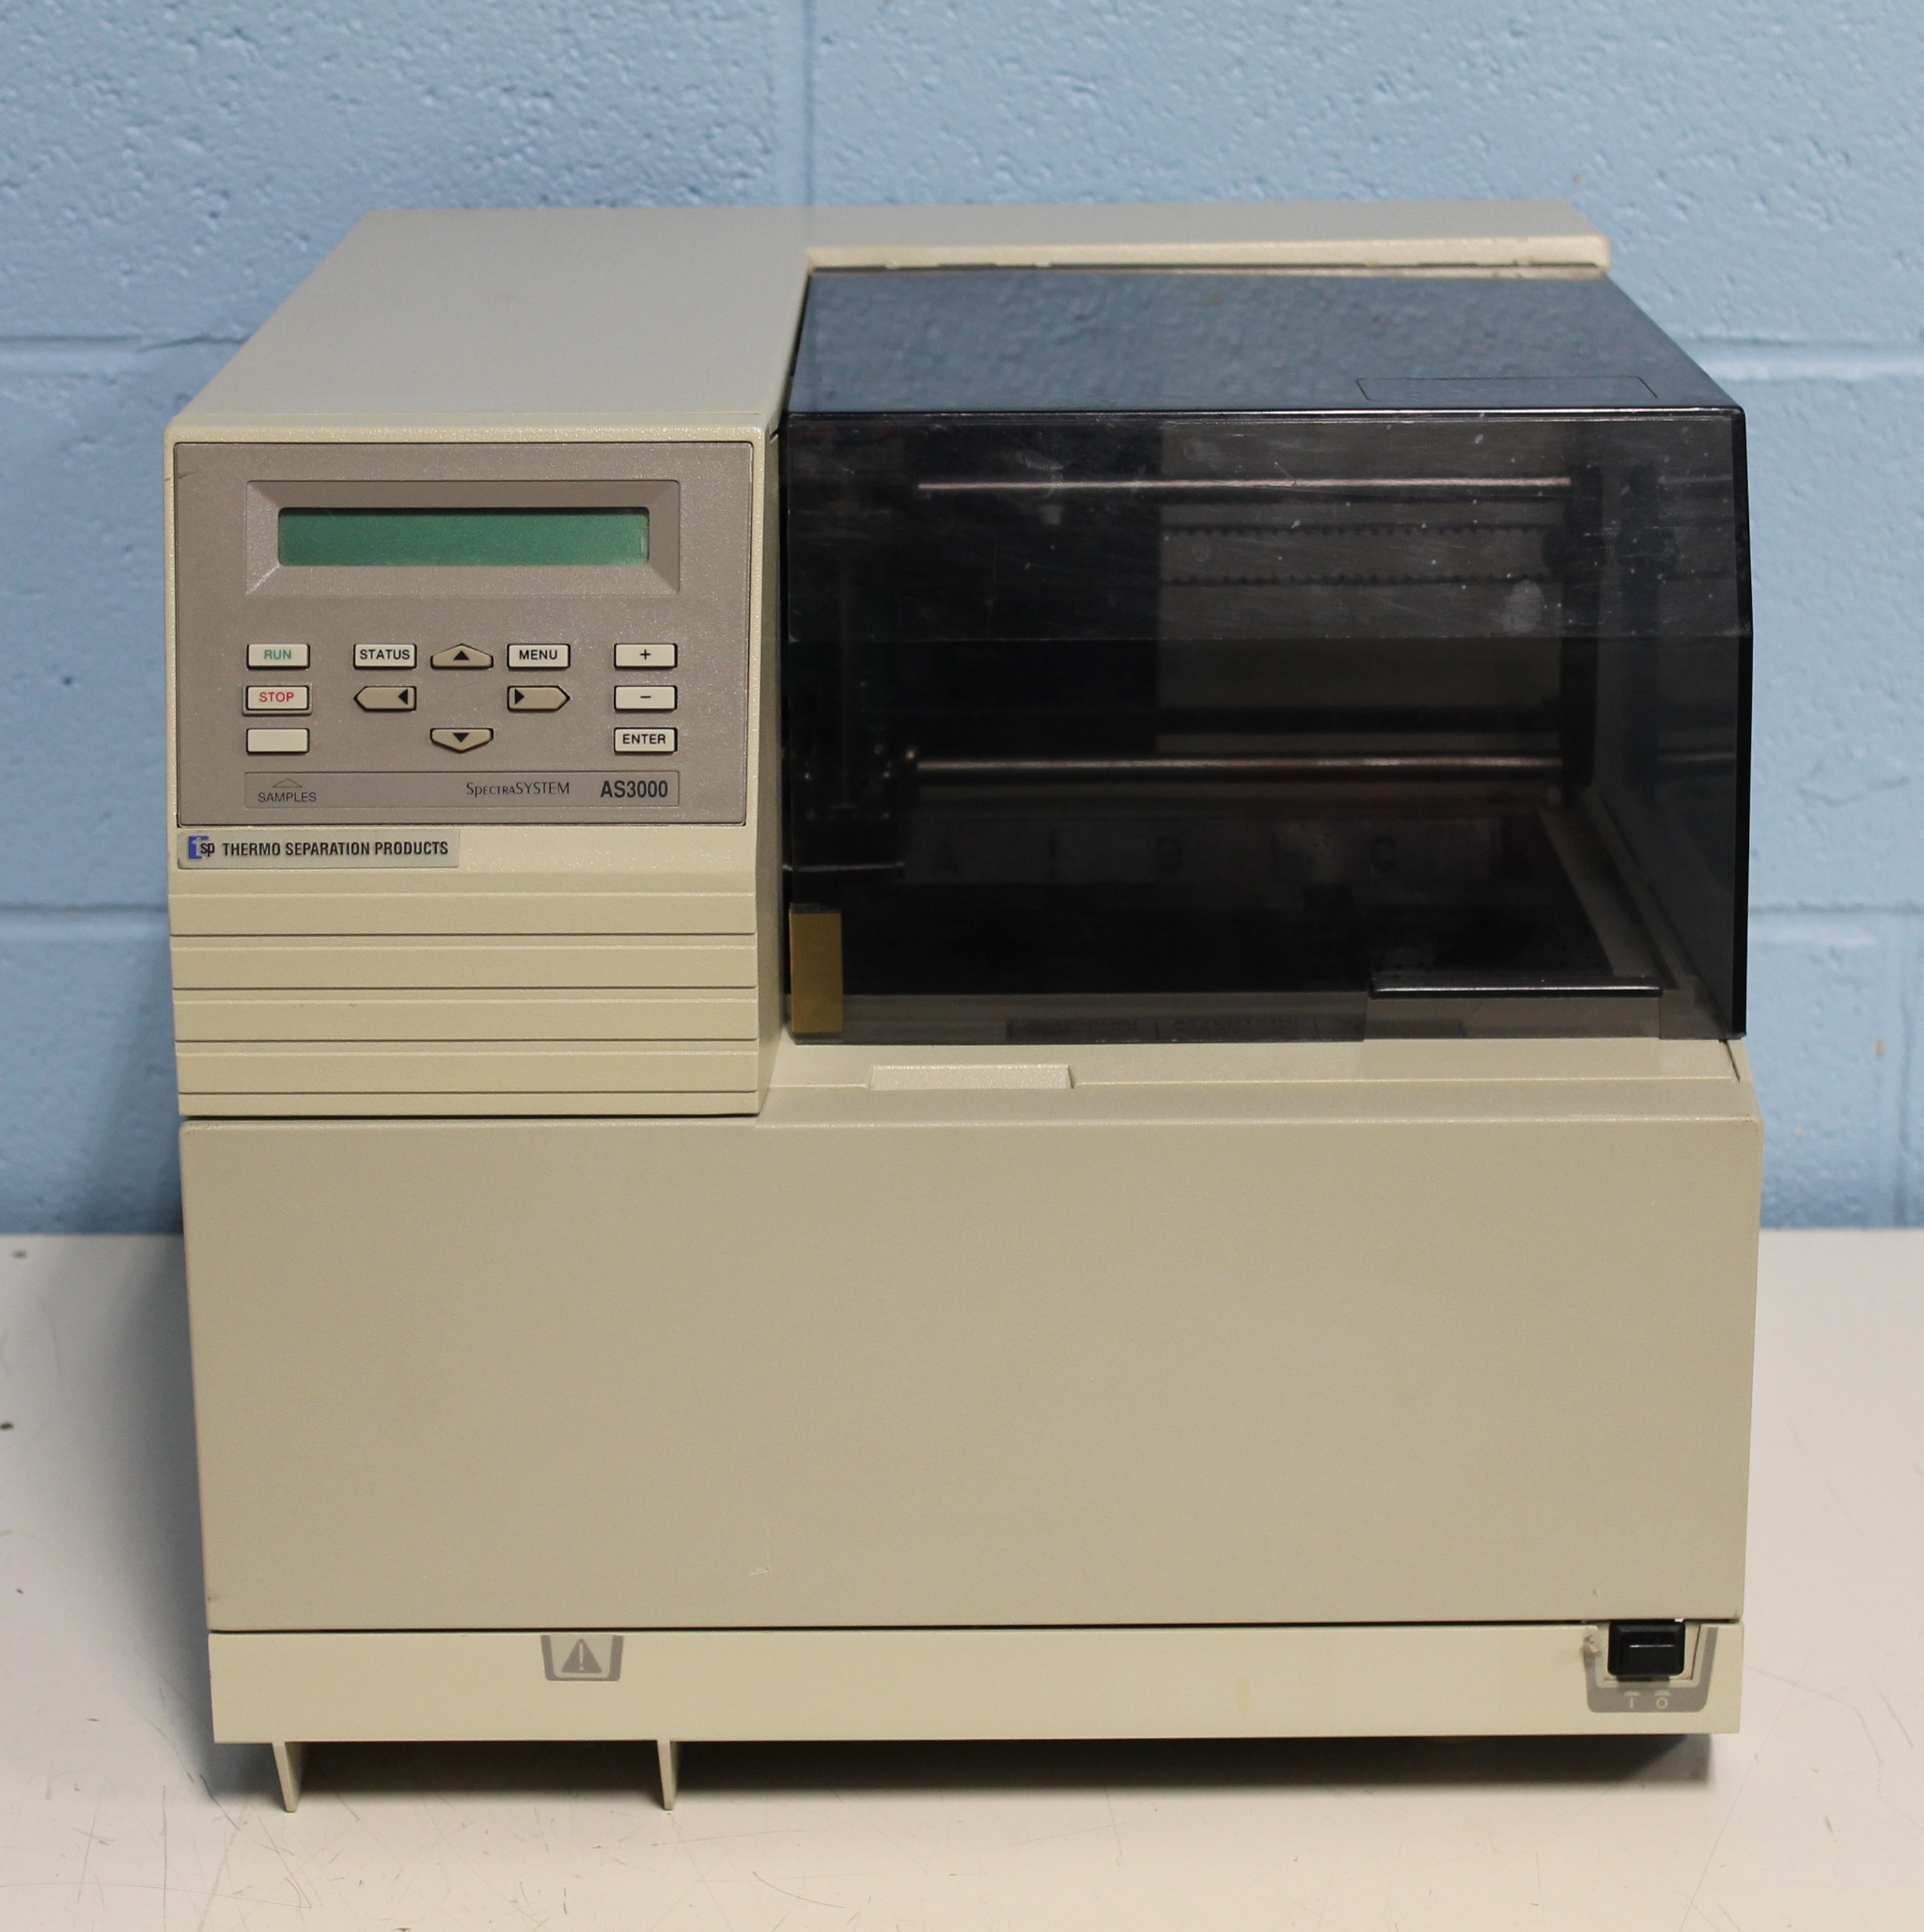 Thermo AS3000 Autosampler Image